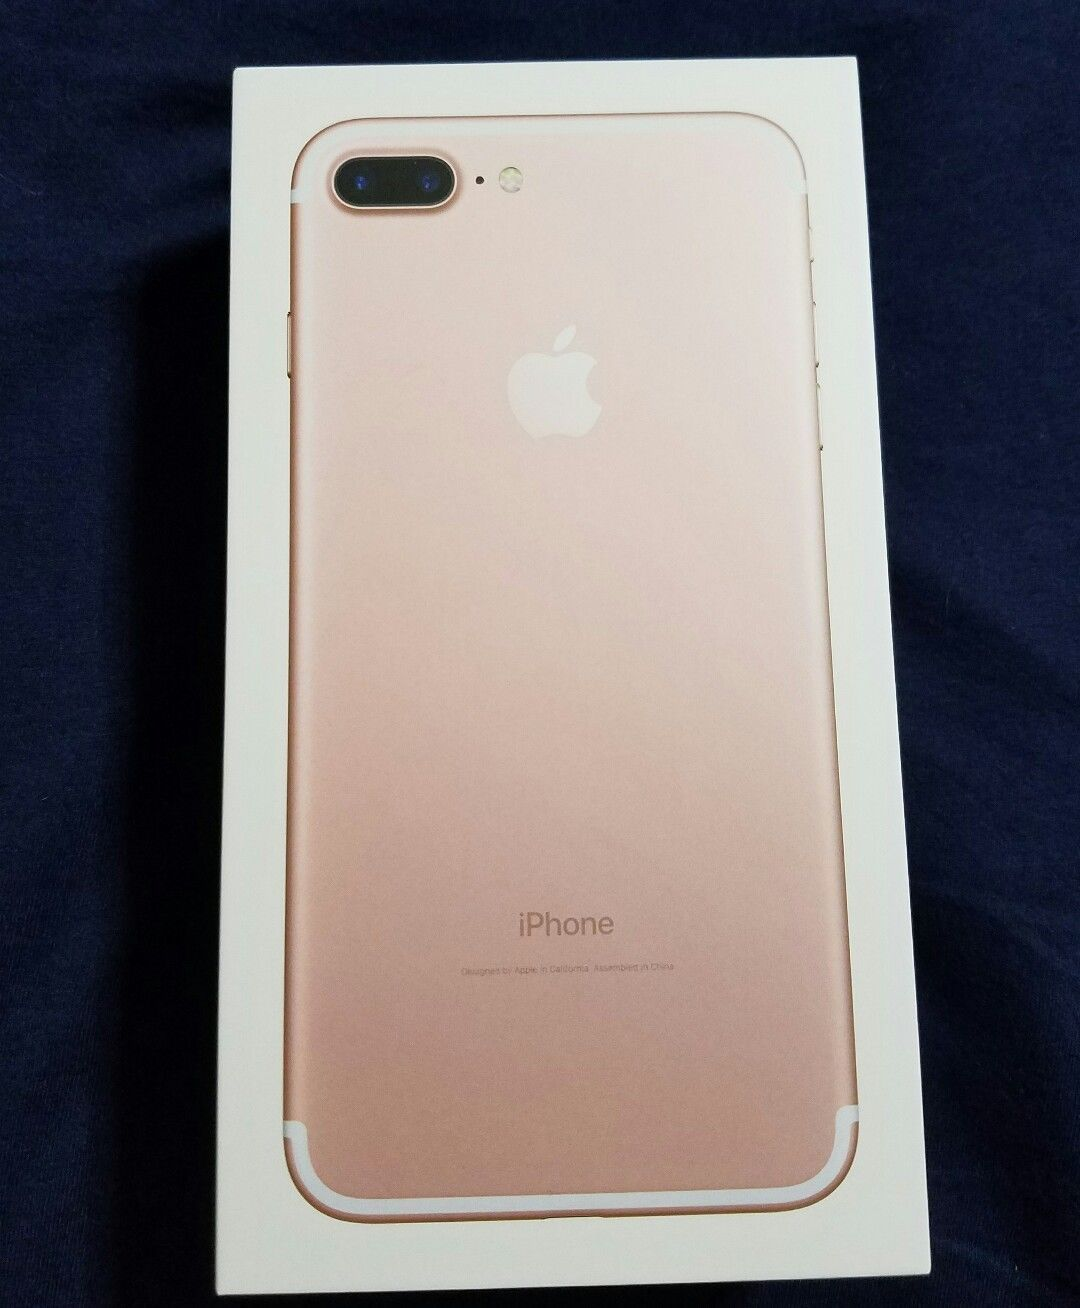 Apple Iphone 7 Plus 128gb Rose Gold Gsm Unlocked W O Contract Se Rosegold